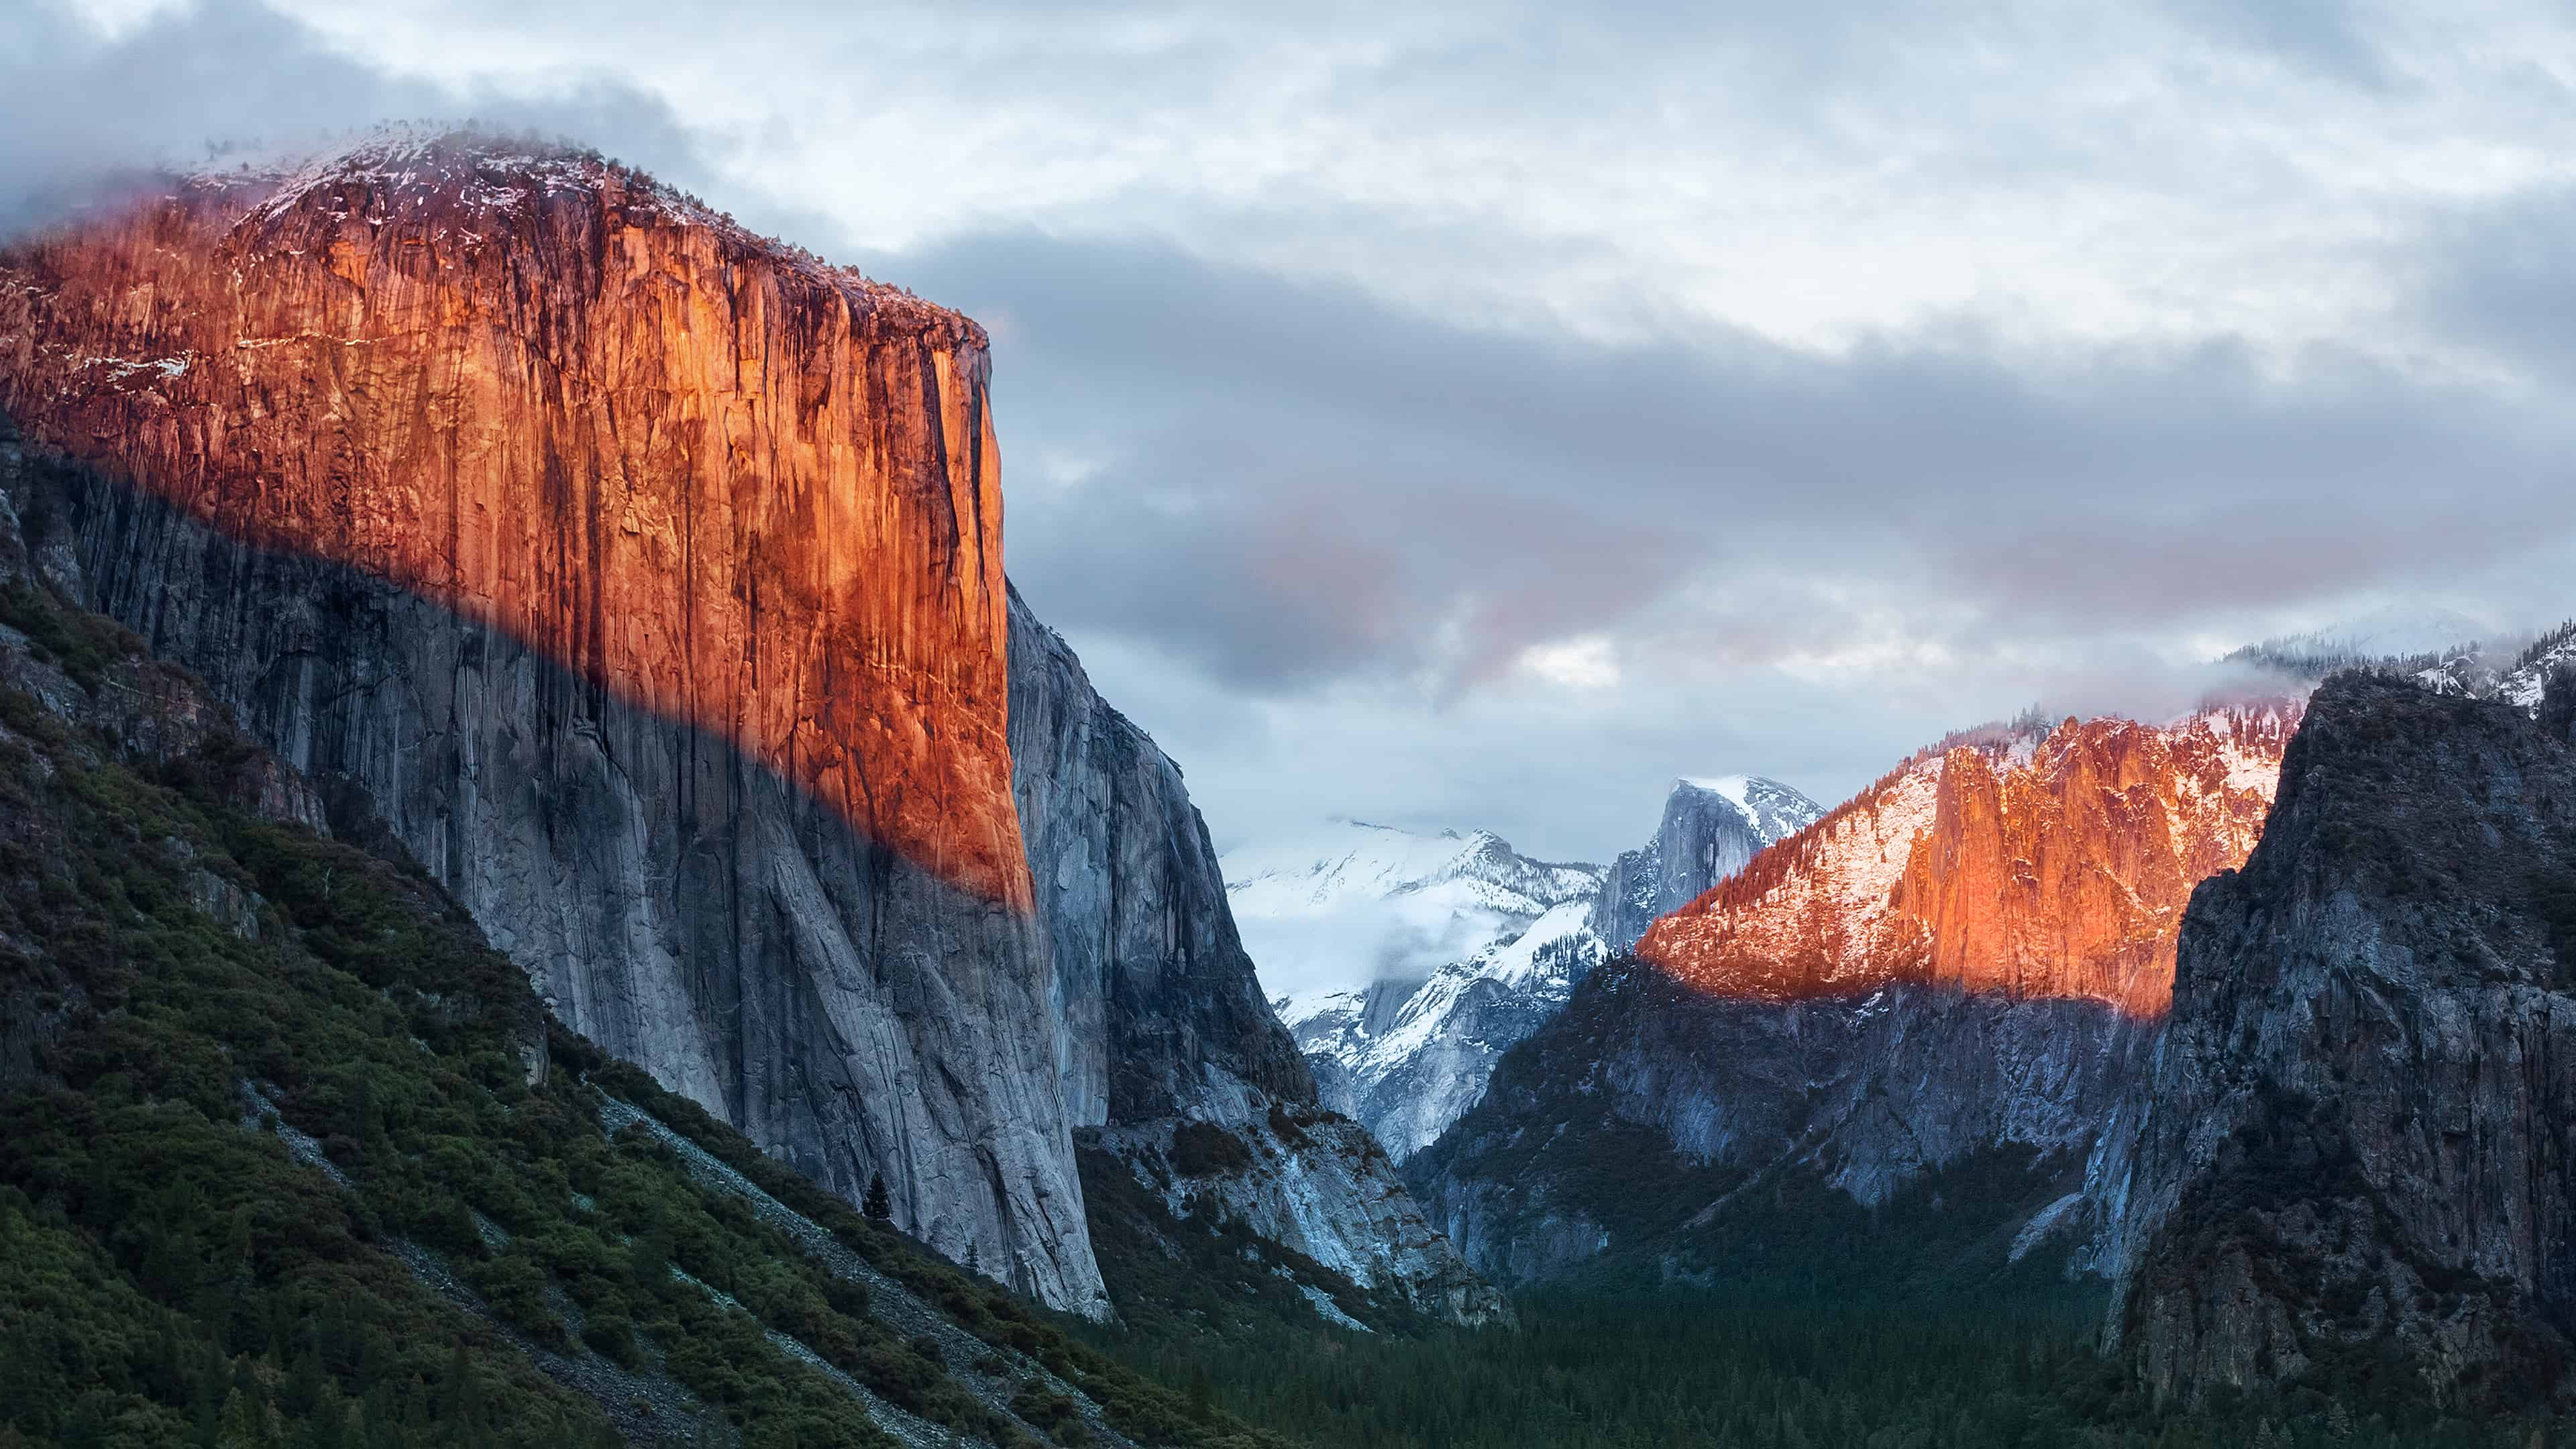 Mac OSX 1011 El Capitan Background UHD 4K Wallpaper Pixelz 3840x2160